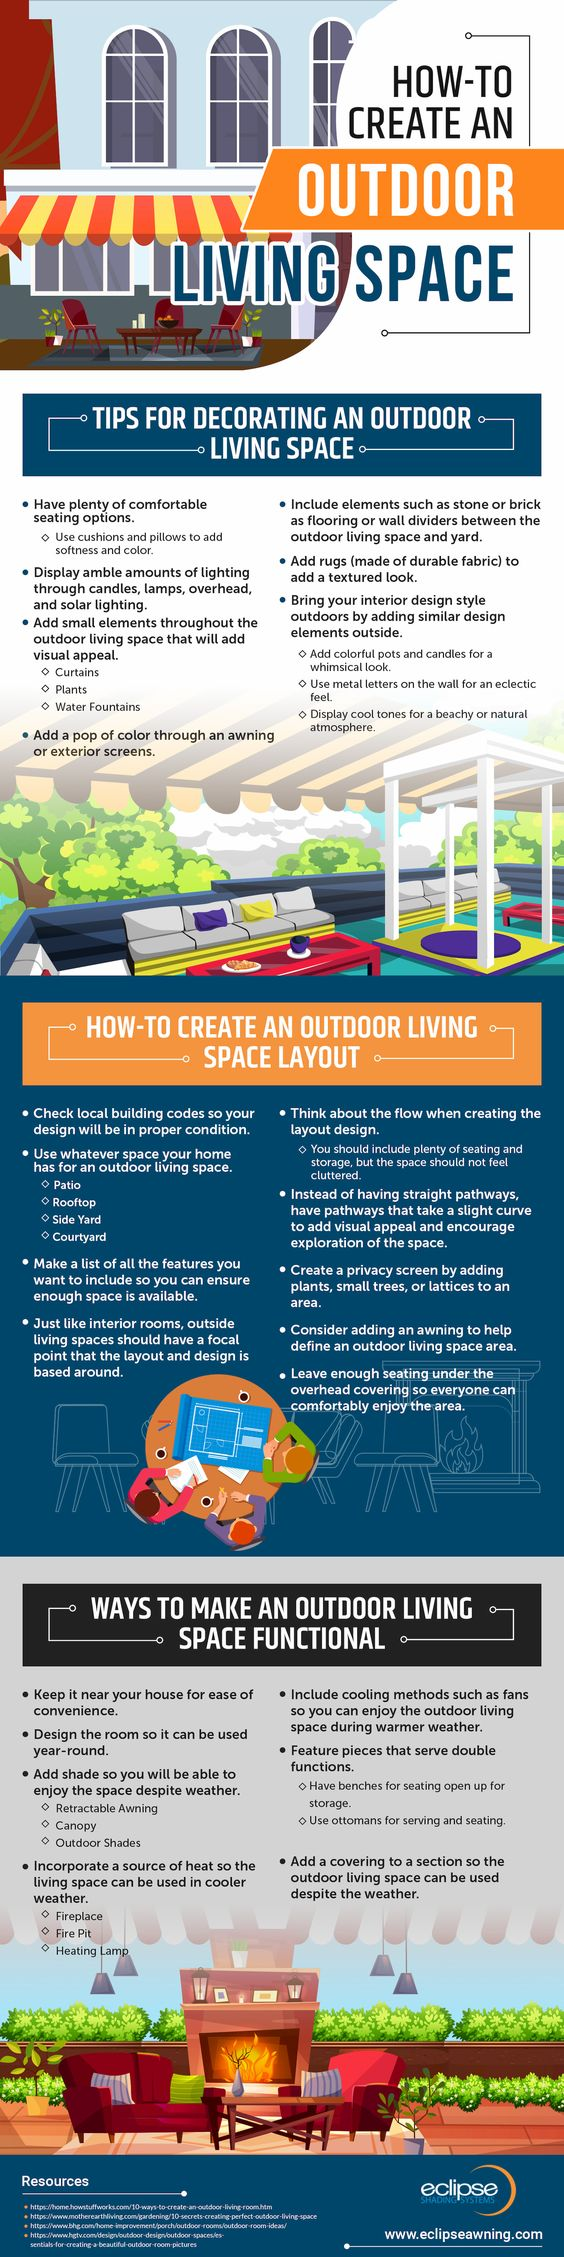 How To Create An Outdoor Living Space With Images Outdoor